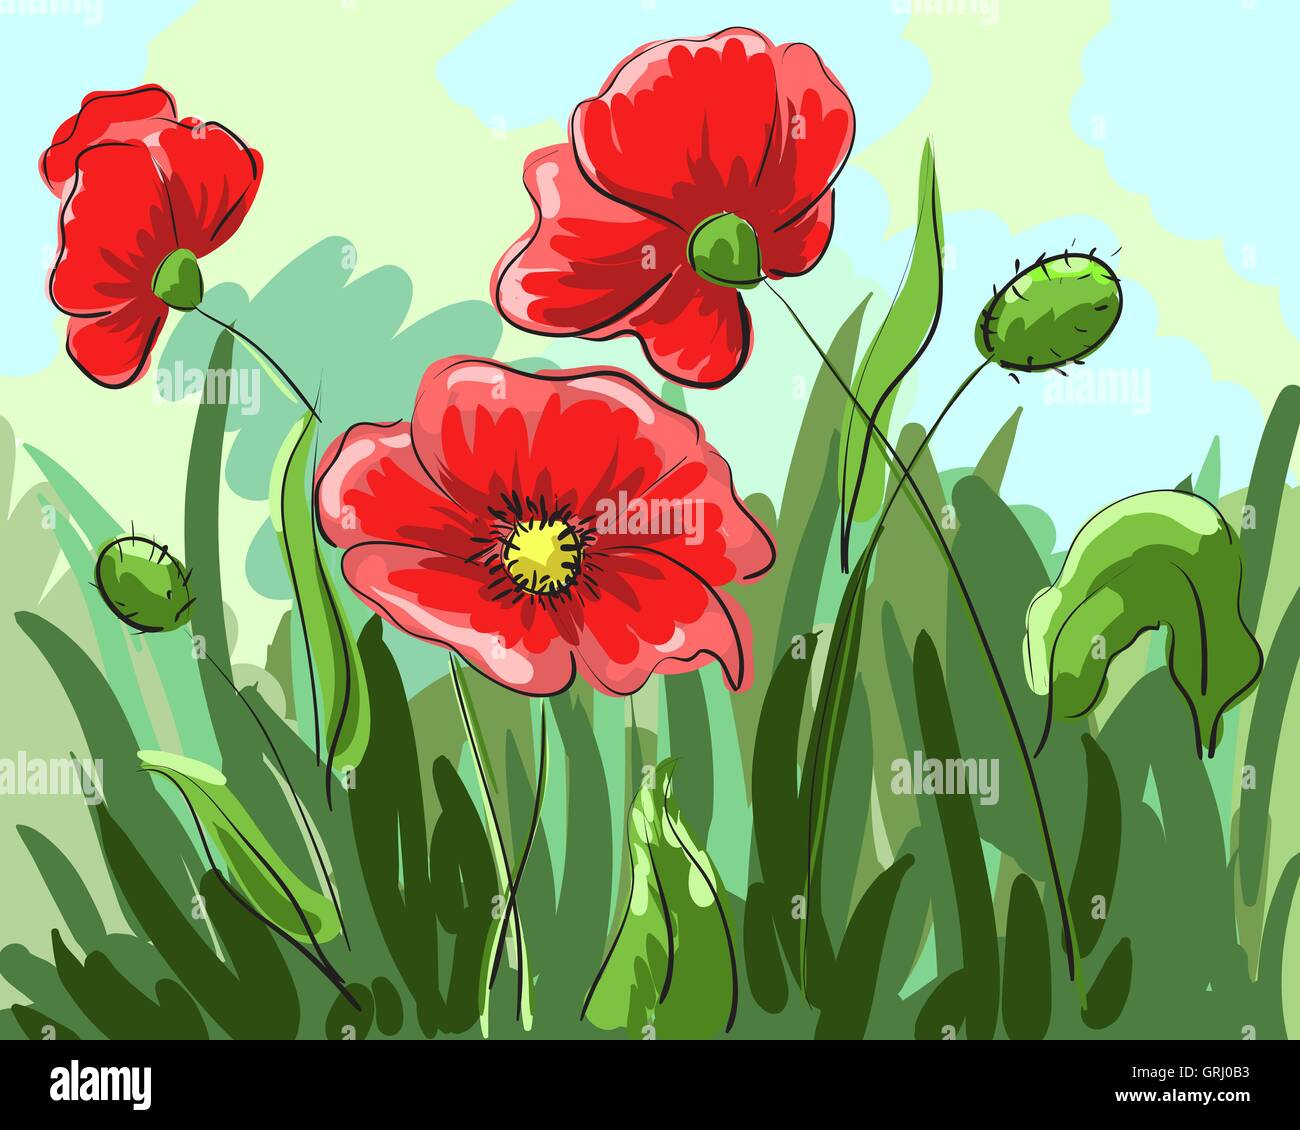 red poppies painted by hand grow on the field with green leaves. Vector - Stock Vector